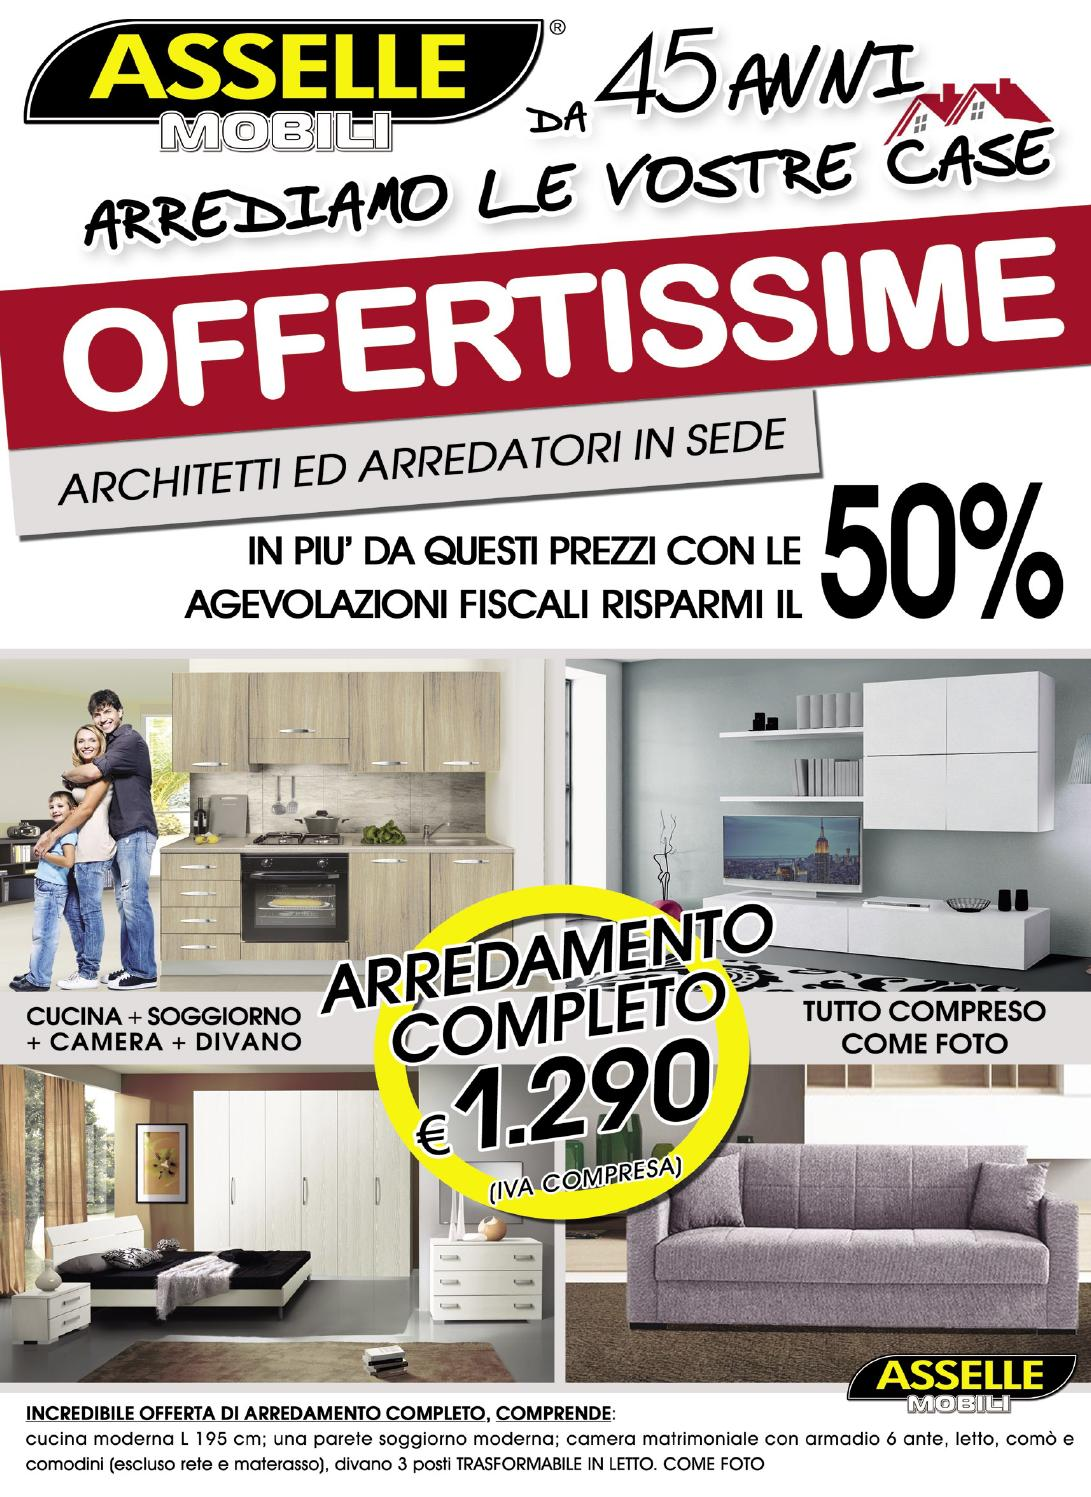 Asselle mobili offertissime by Asselle Mobili - issuu